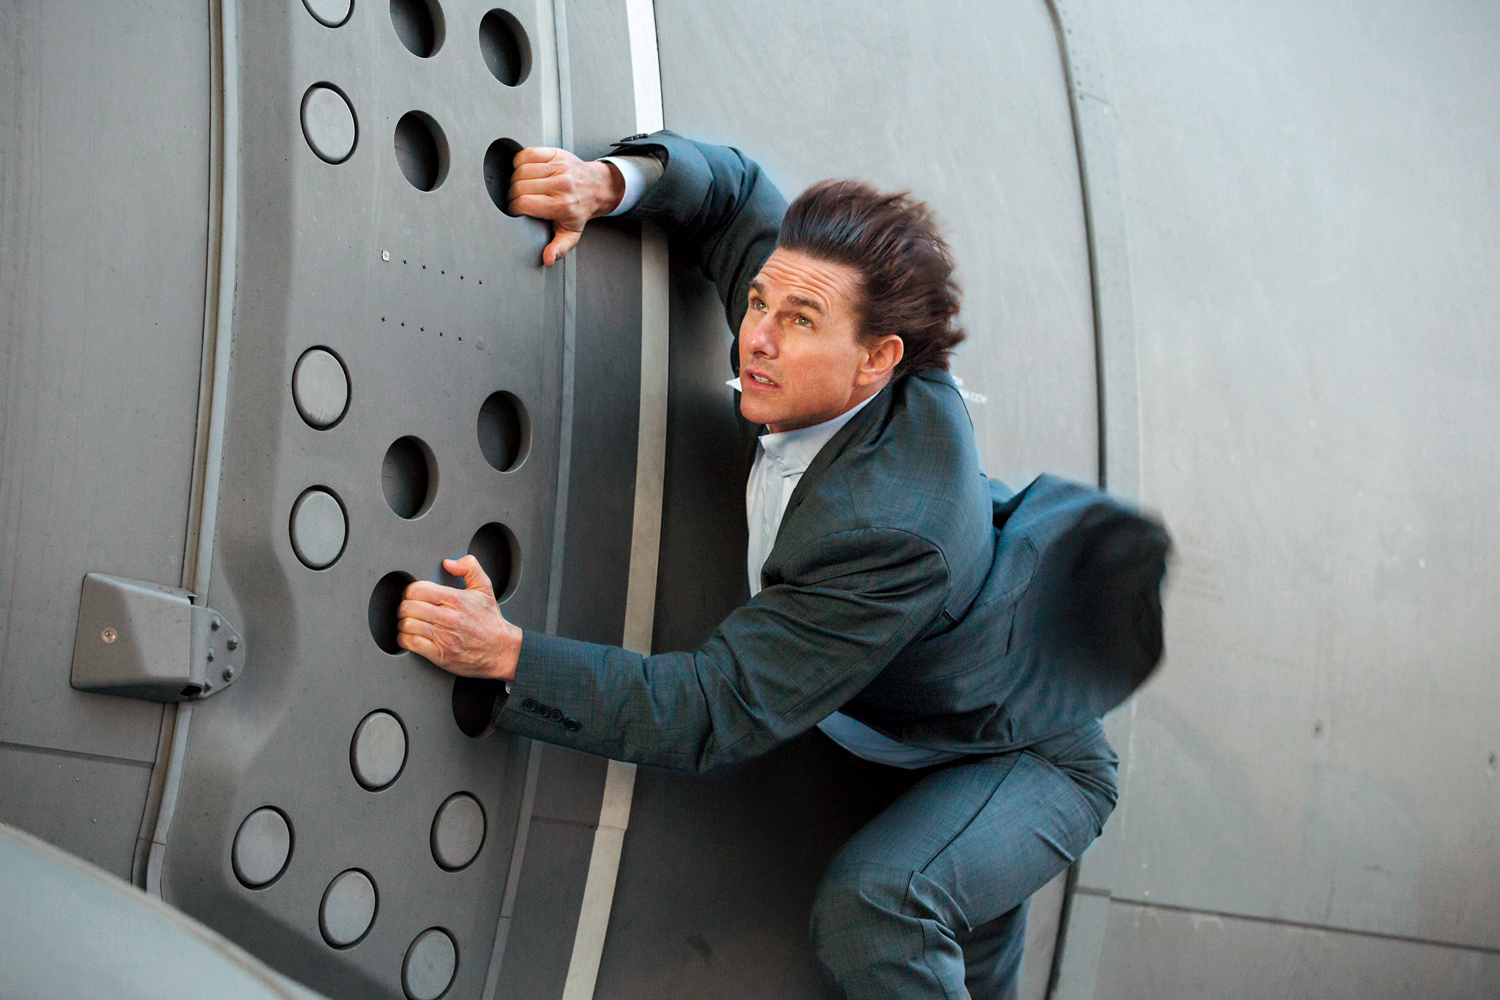 New 'Mission: Impossible 6' Image Brings the Team Back Together Again